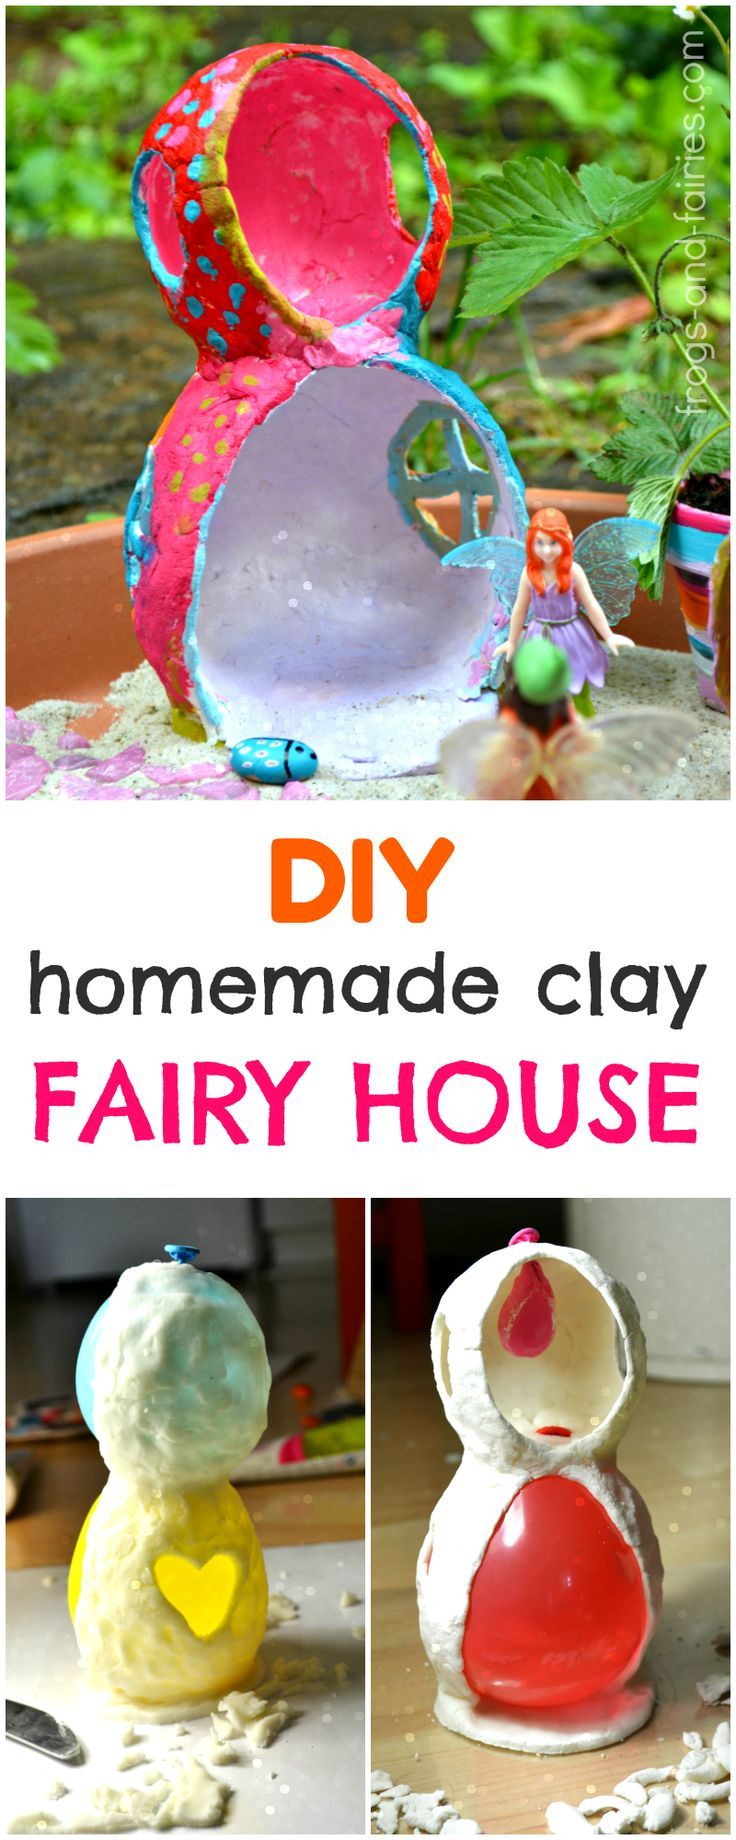 Make this adorable two story fairy house!